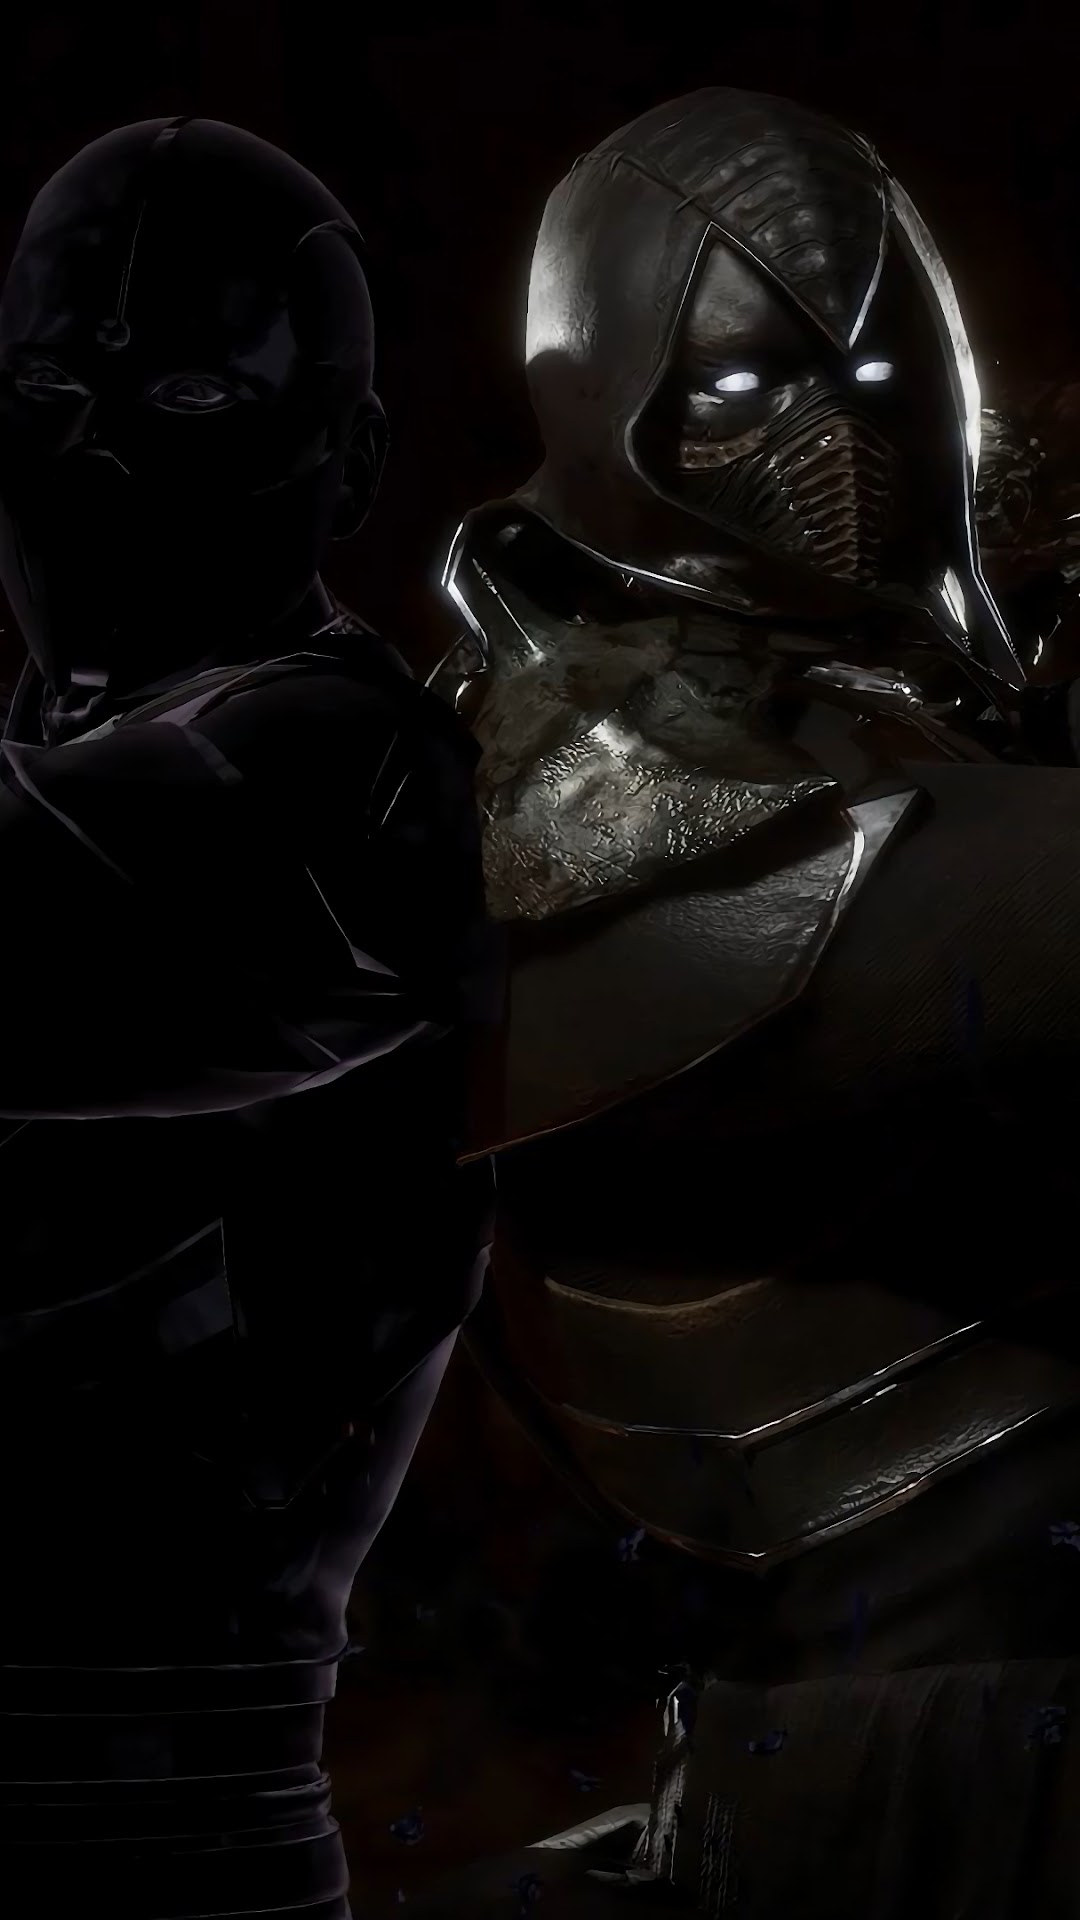 Noob Saibot Mortal Kombat 11 4k Wallpaper 64